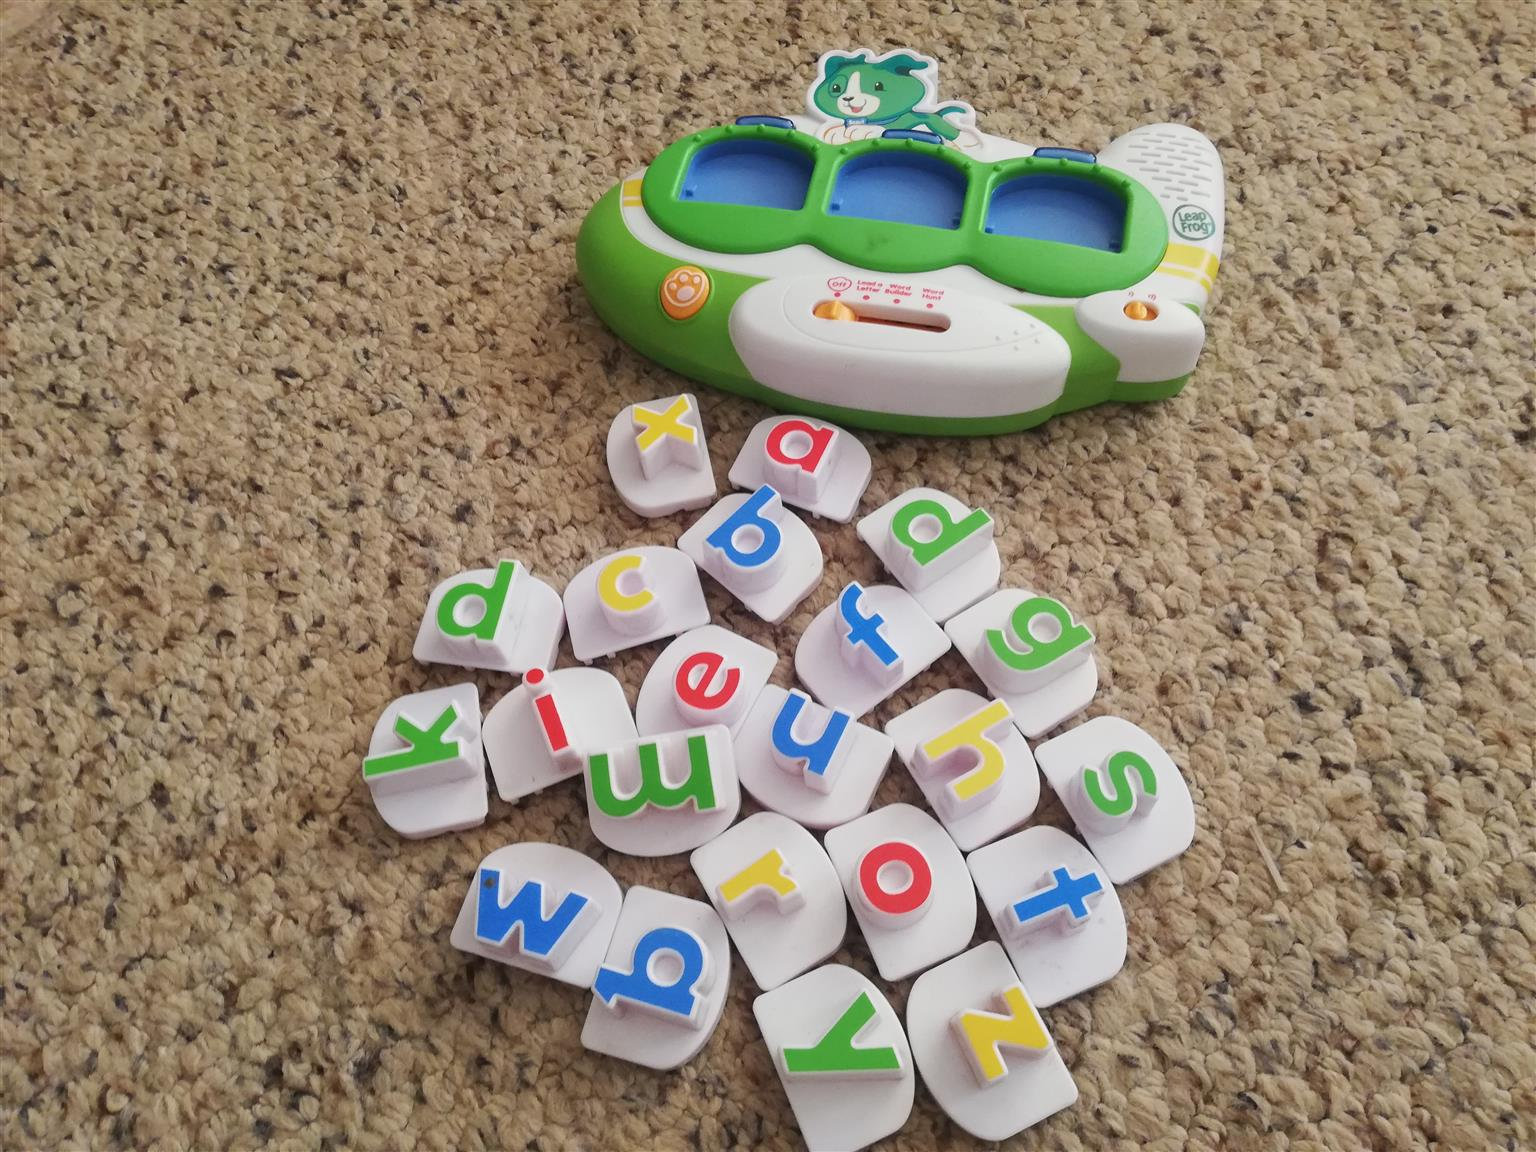 Leap frog kids ABC's educational toy